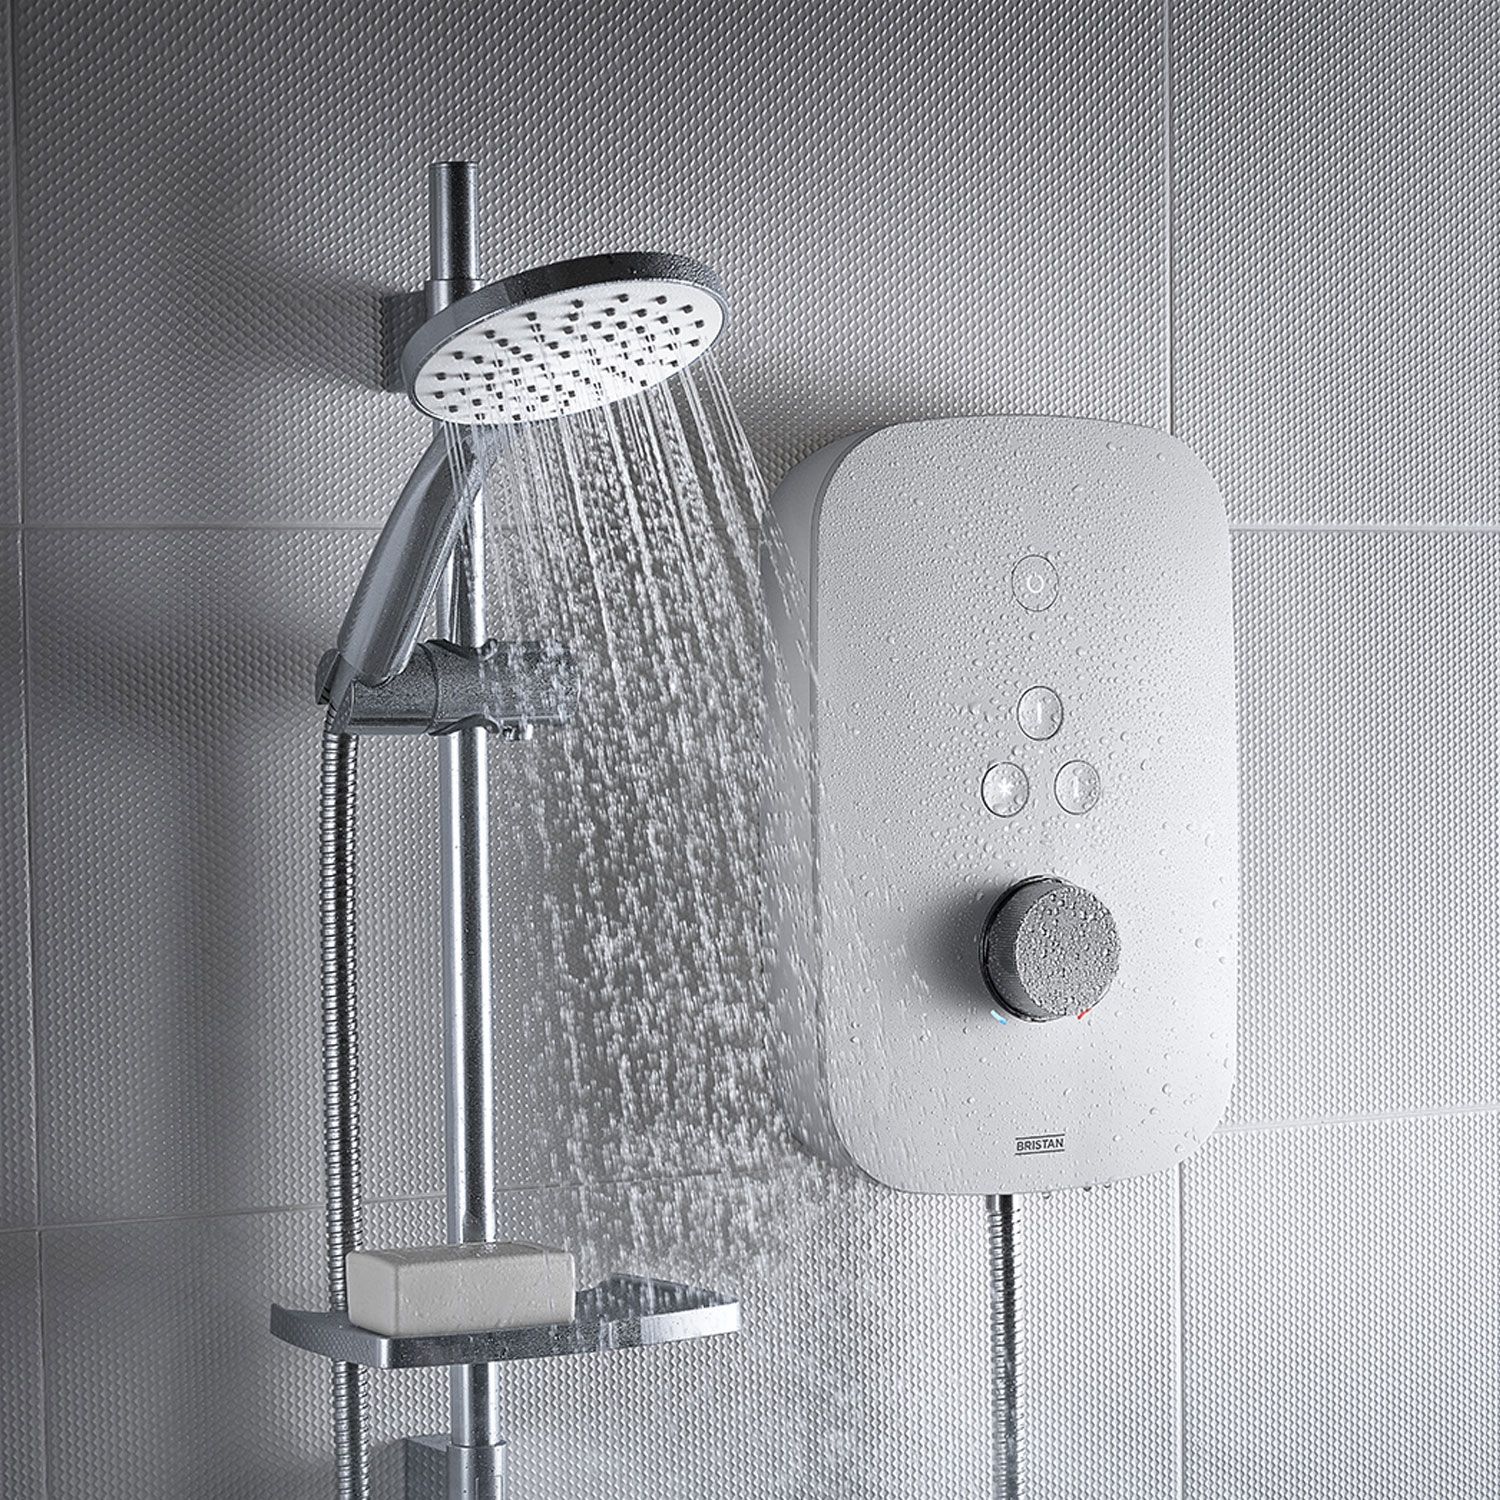 Bristan Solis 10.5kw Electric Shower - White